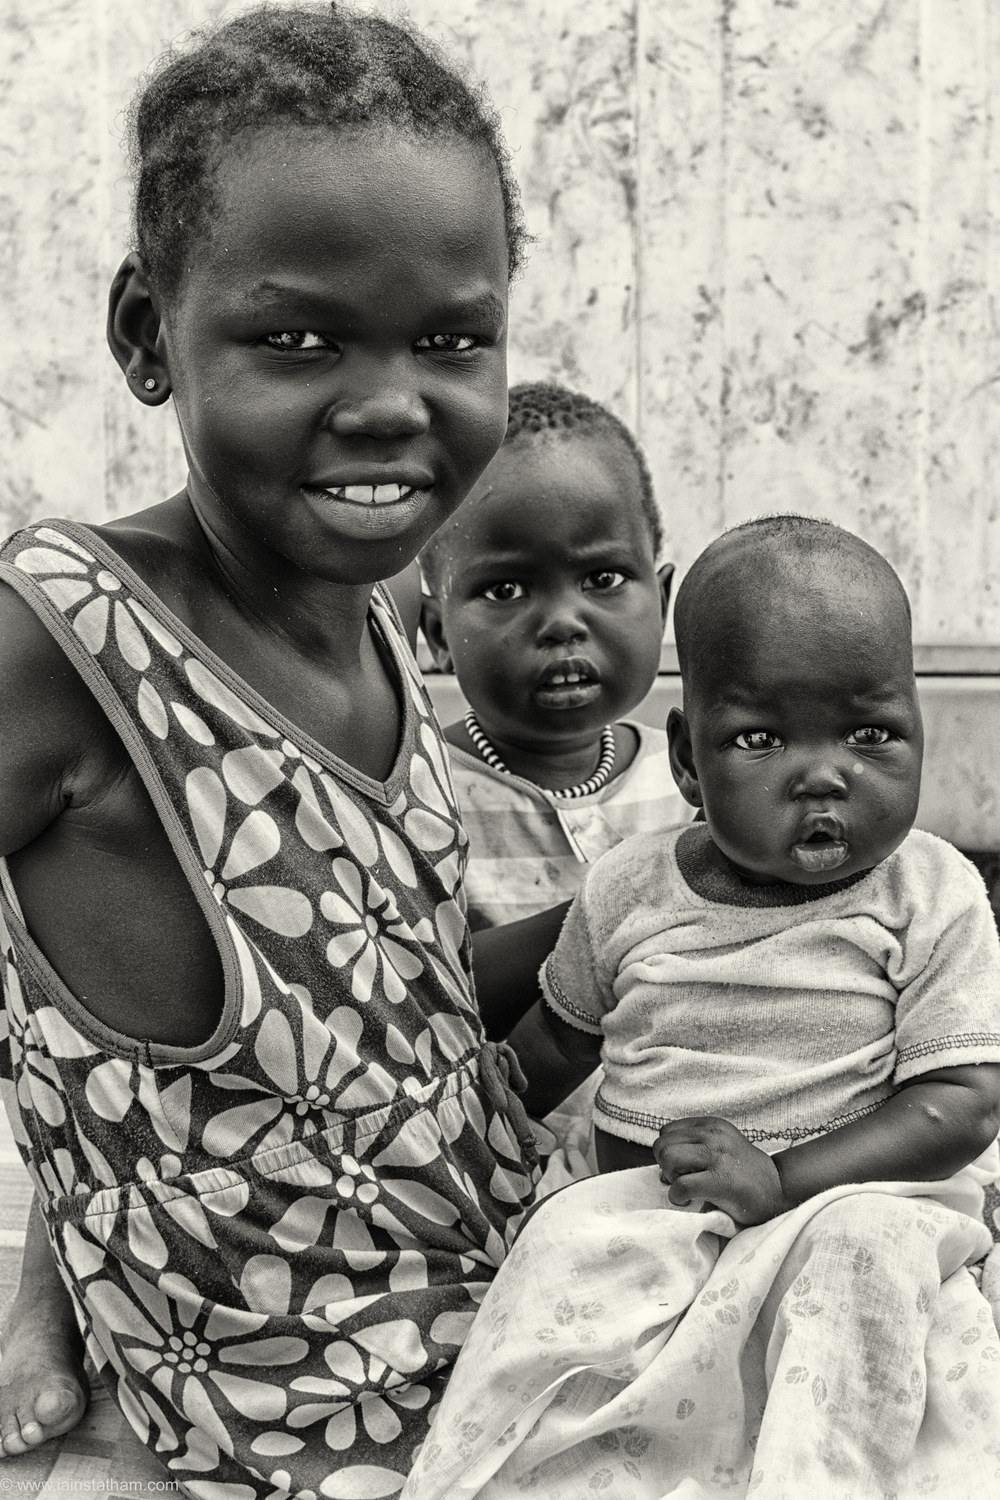 ug - south sudan refugees - dziapi - bw-13.jpg